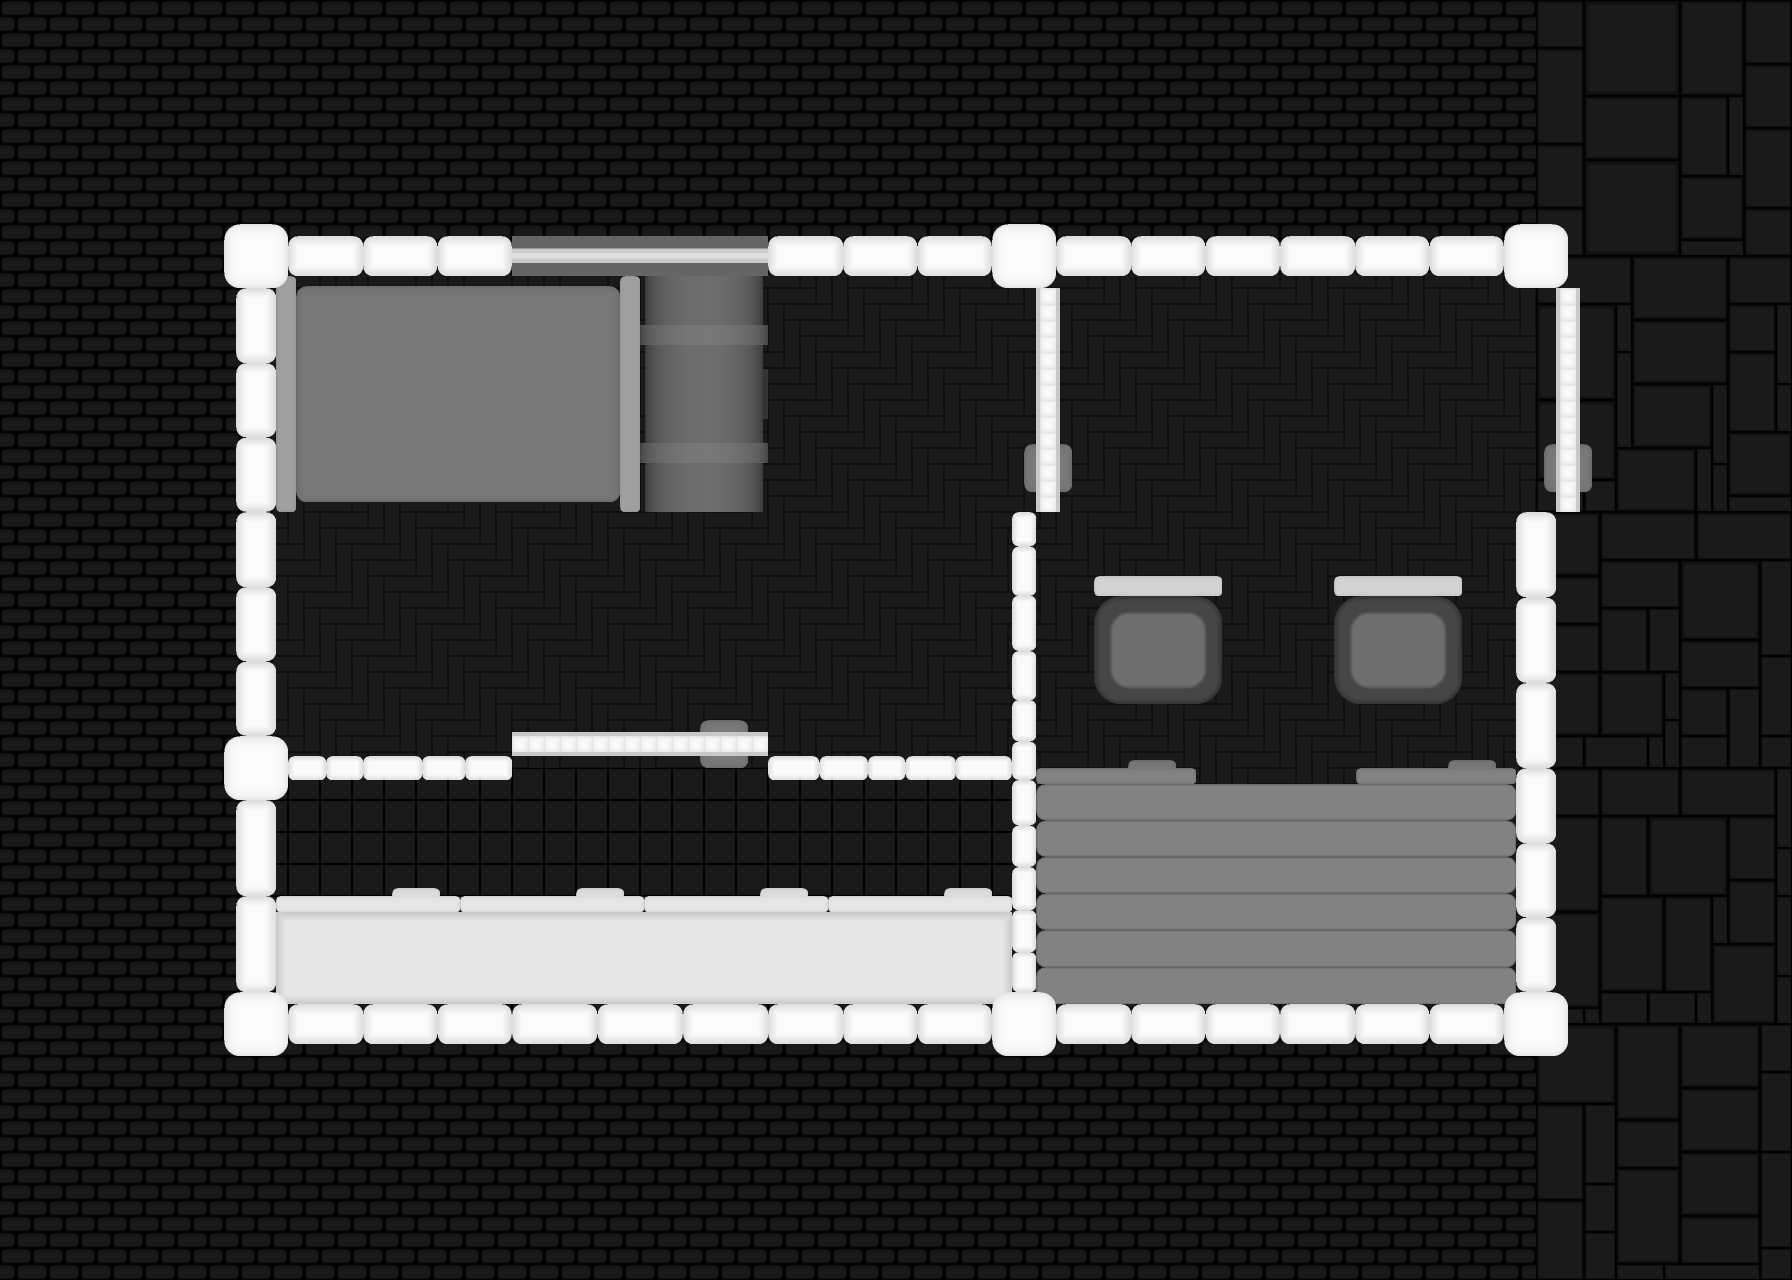 A black&white top-down image of some building